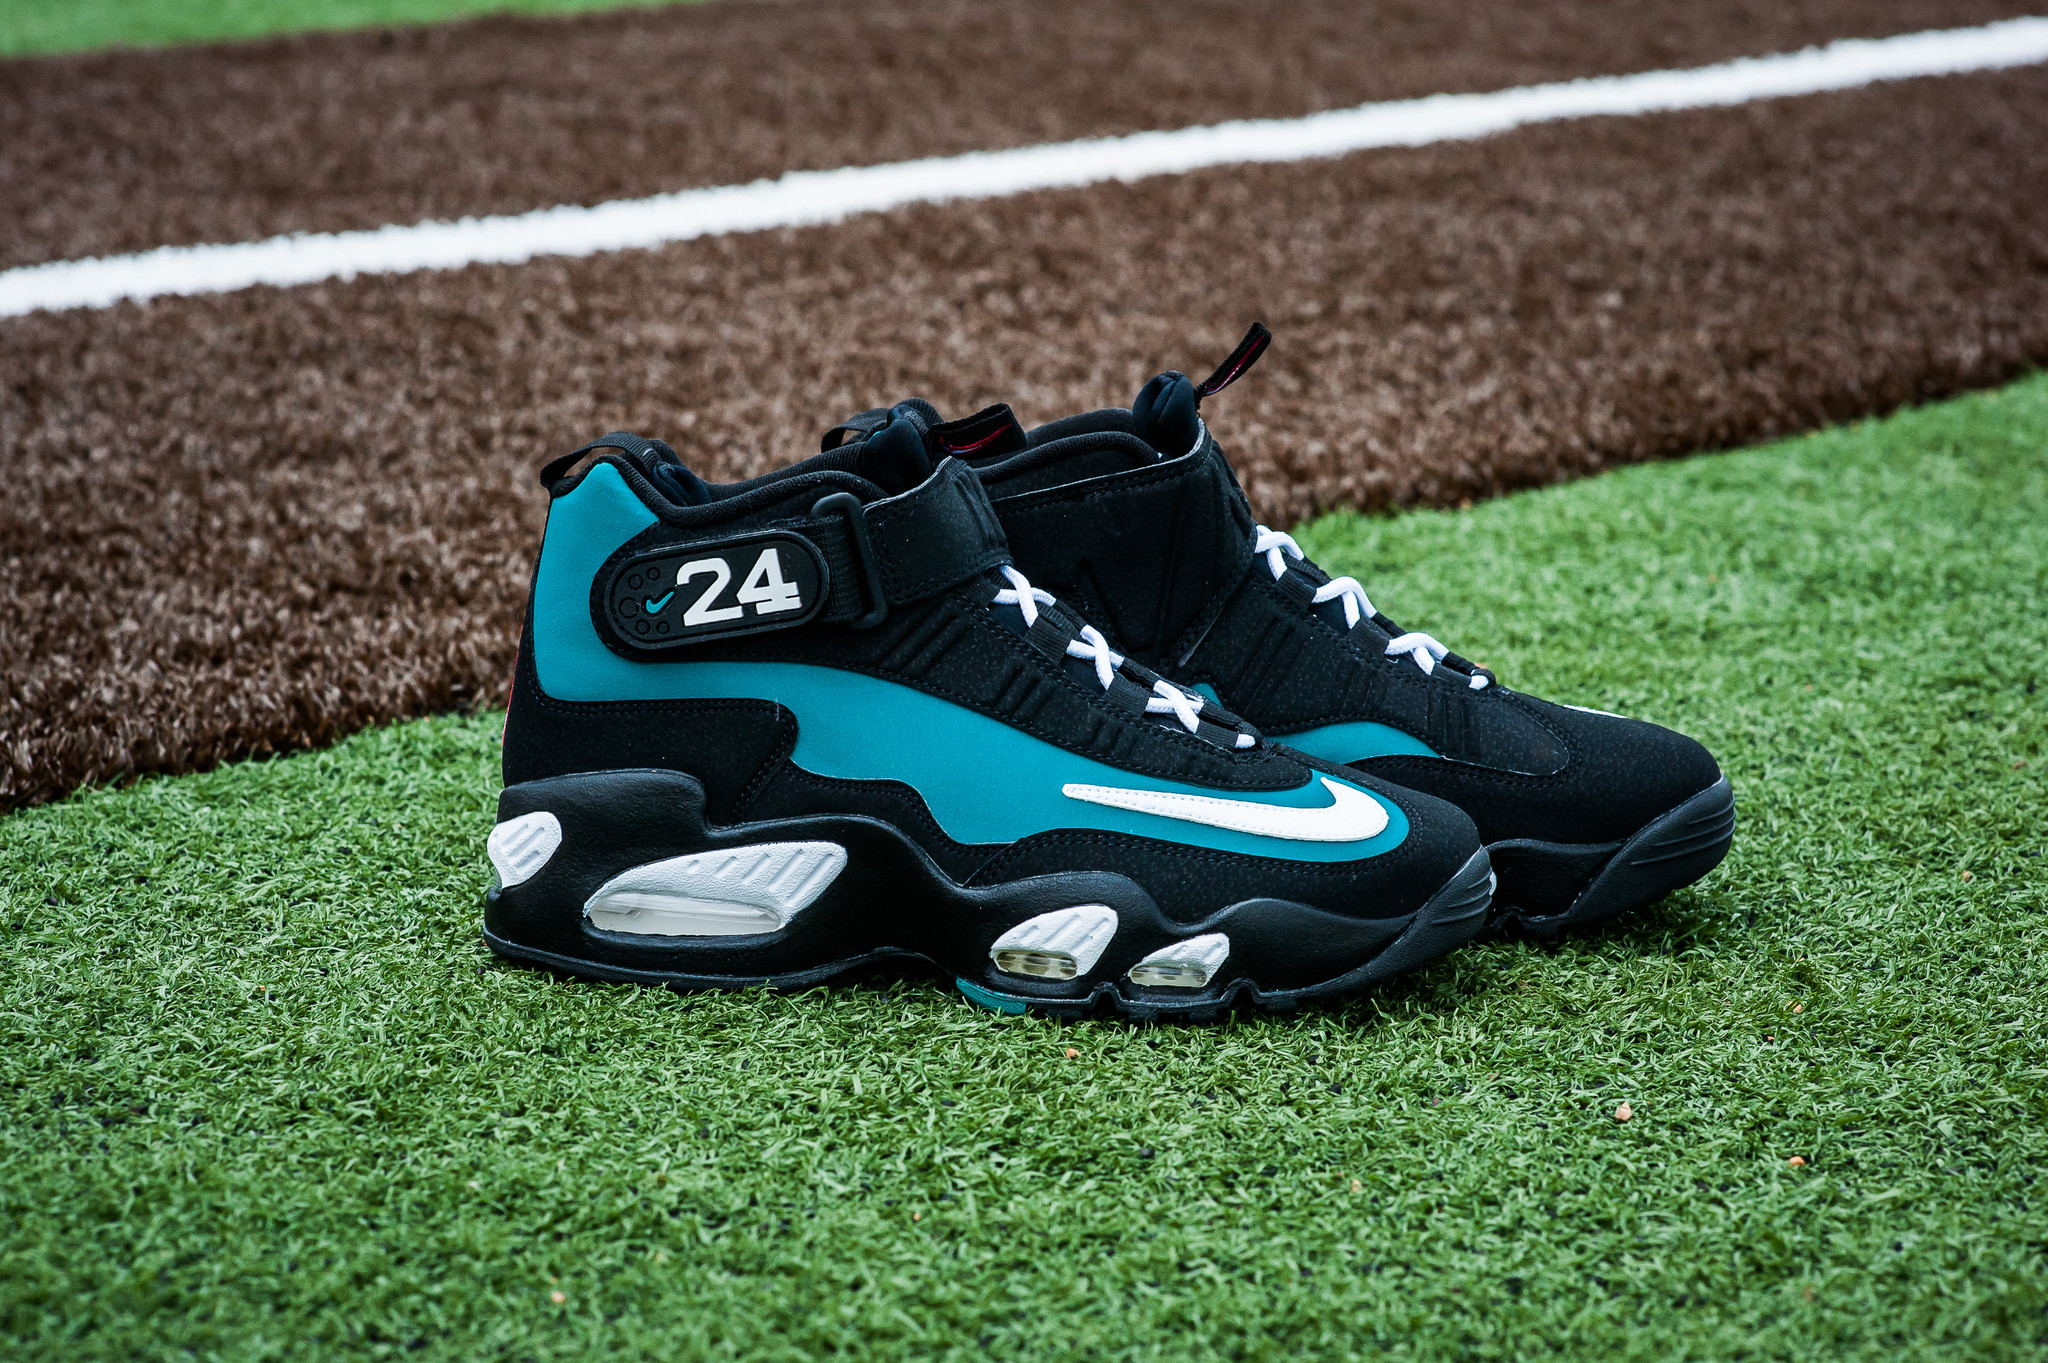 Nike Air Griffey Max 1 Freshwater 2016 | SneakerFiles